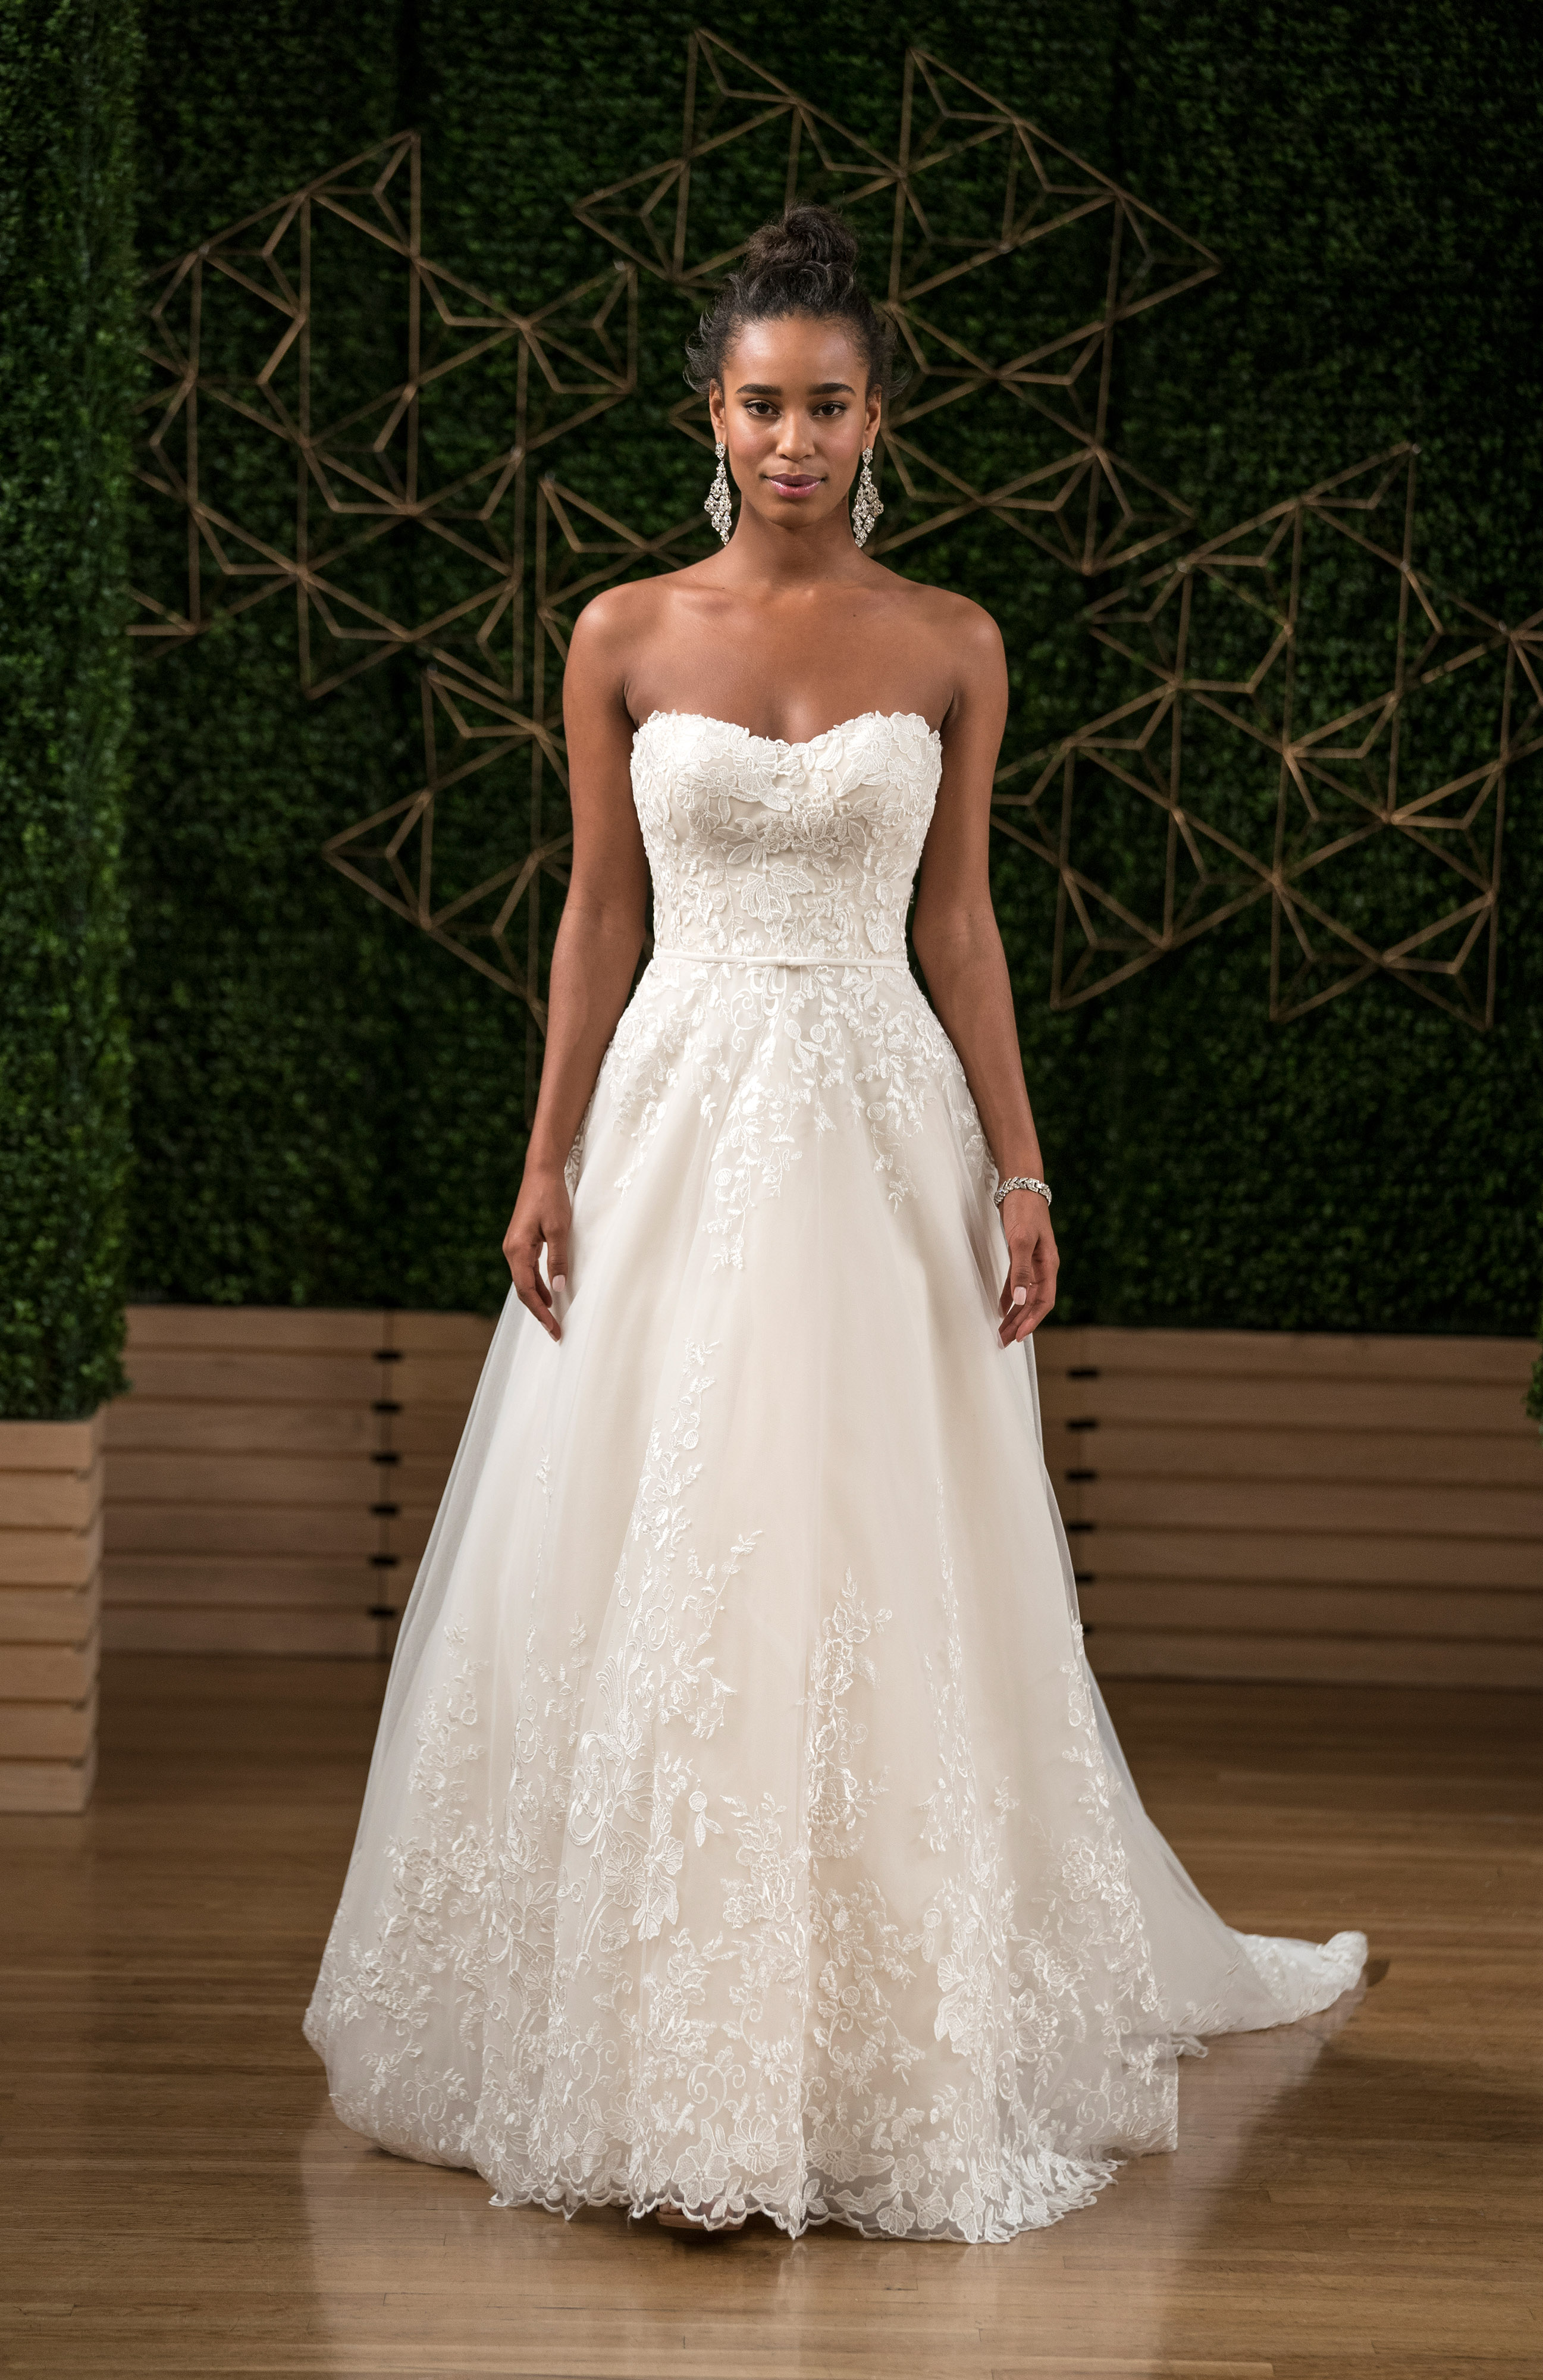 maggie sottero wedding dress fall 2018 strapless a-line lace